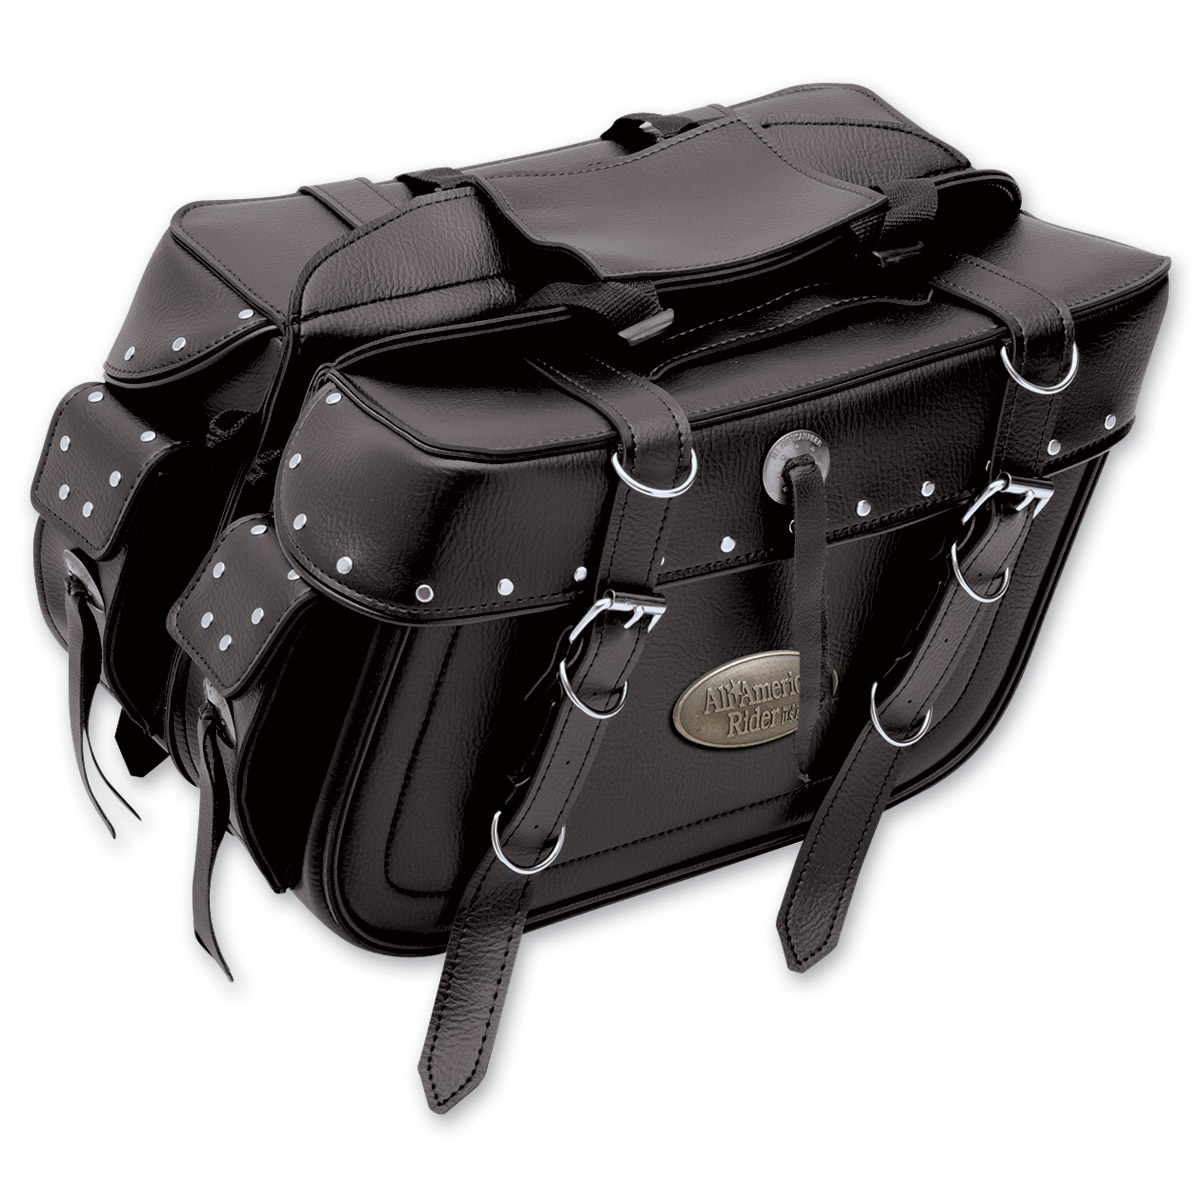 All American Rider Detachable Studded Saddlebags